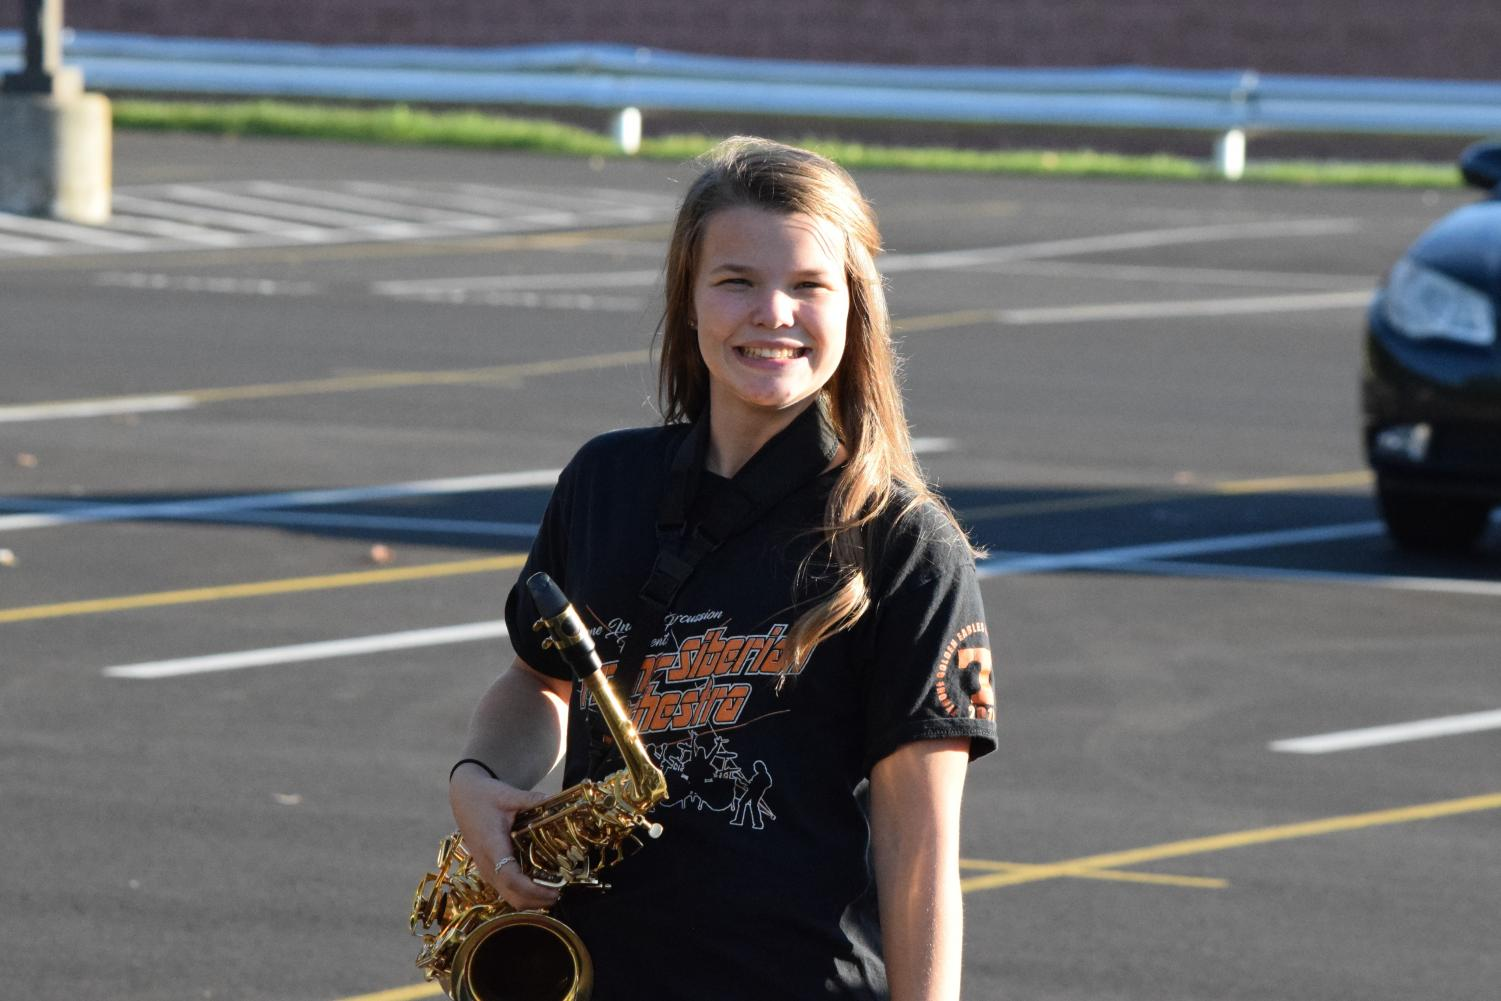 Since sixth grade Emily Detwiler could often be found after school in the high school parking lot, smiling and rehearsing.